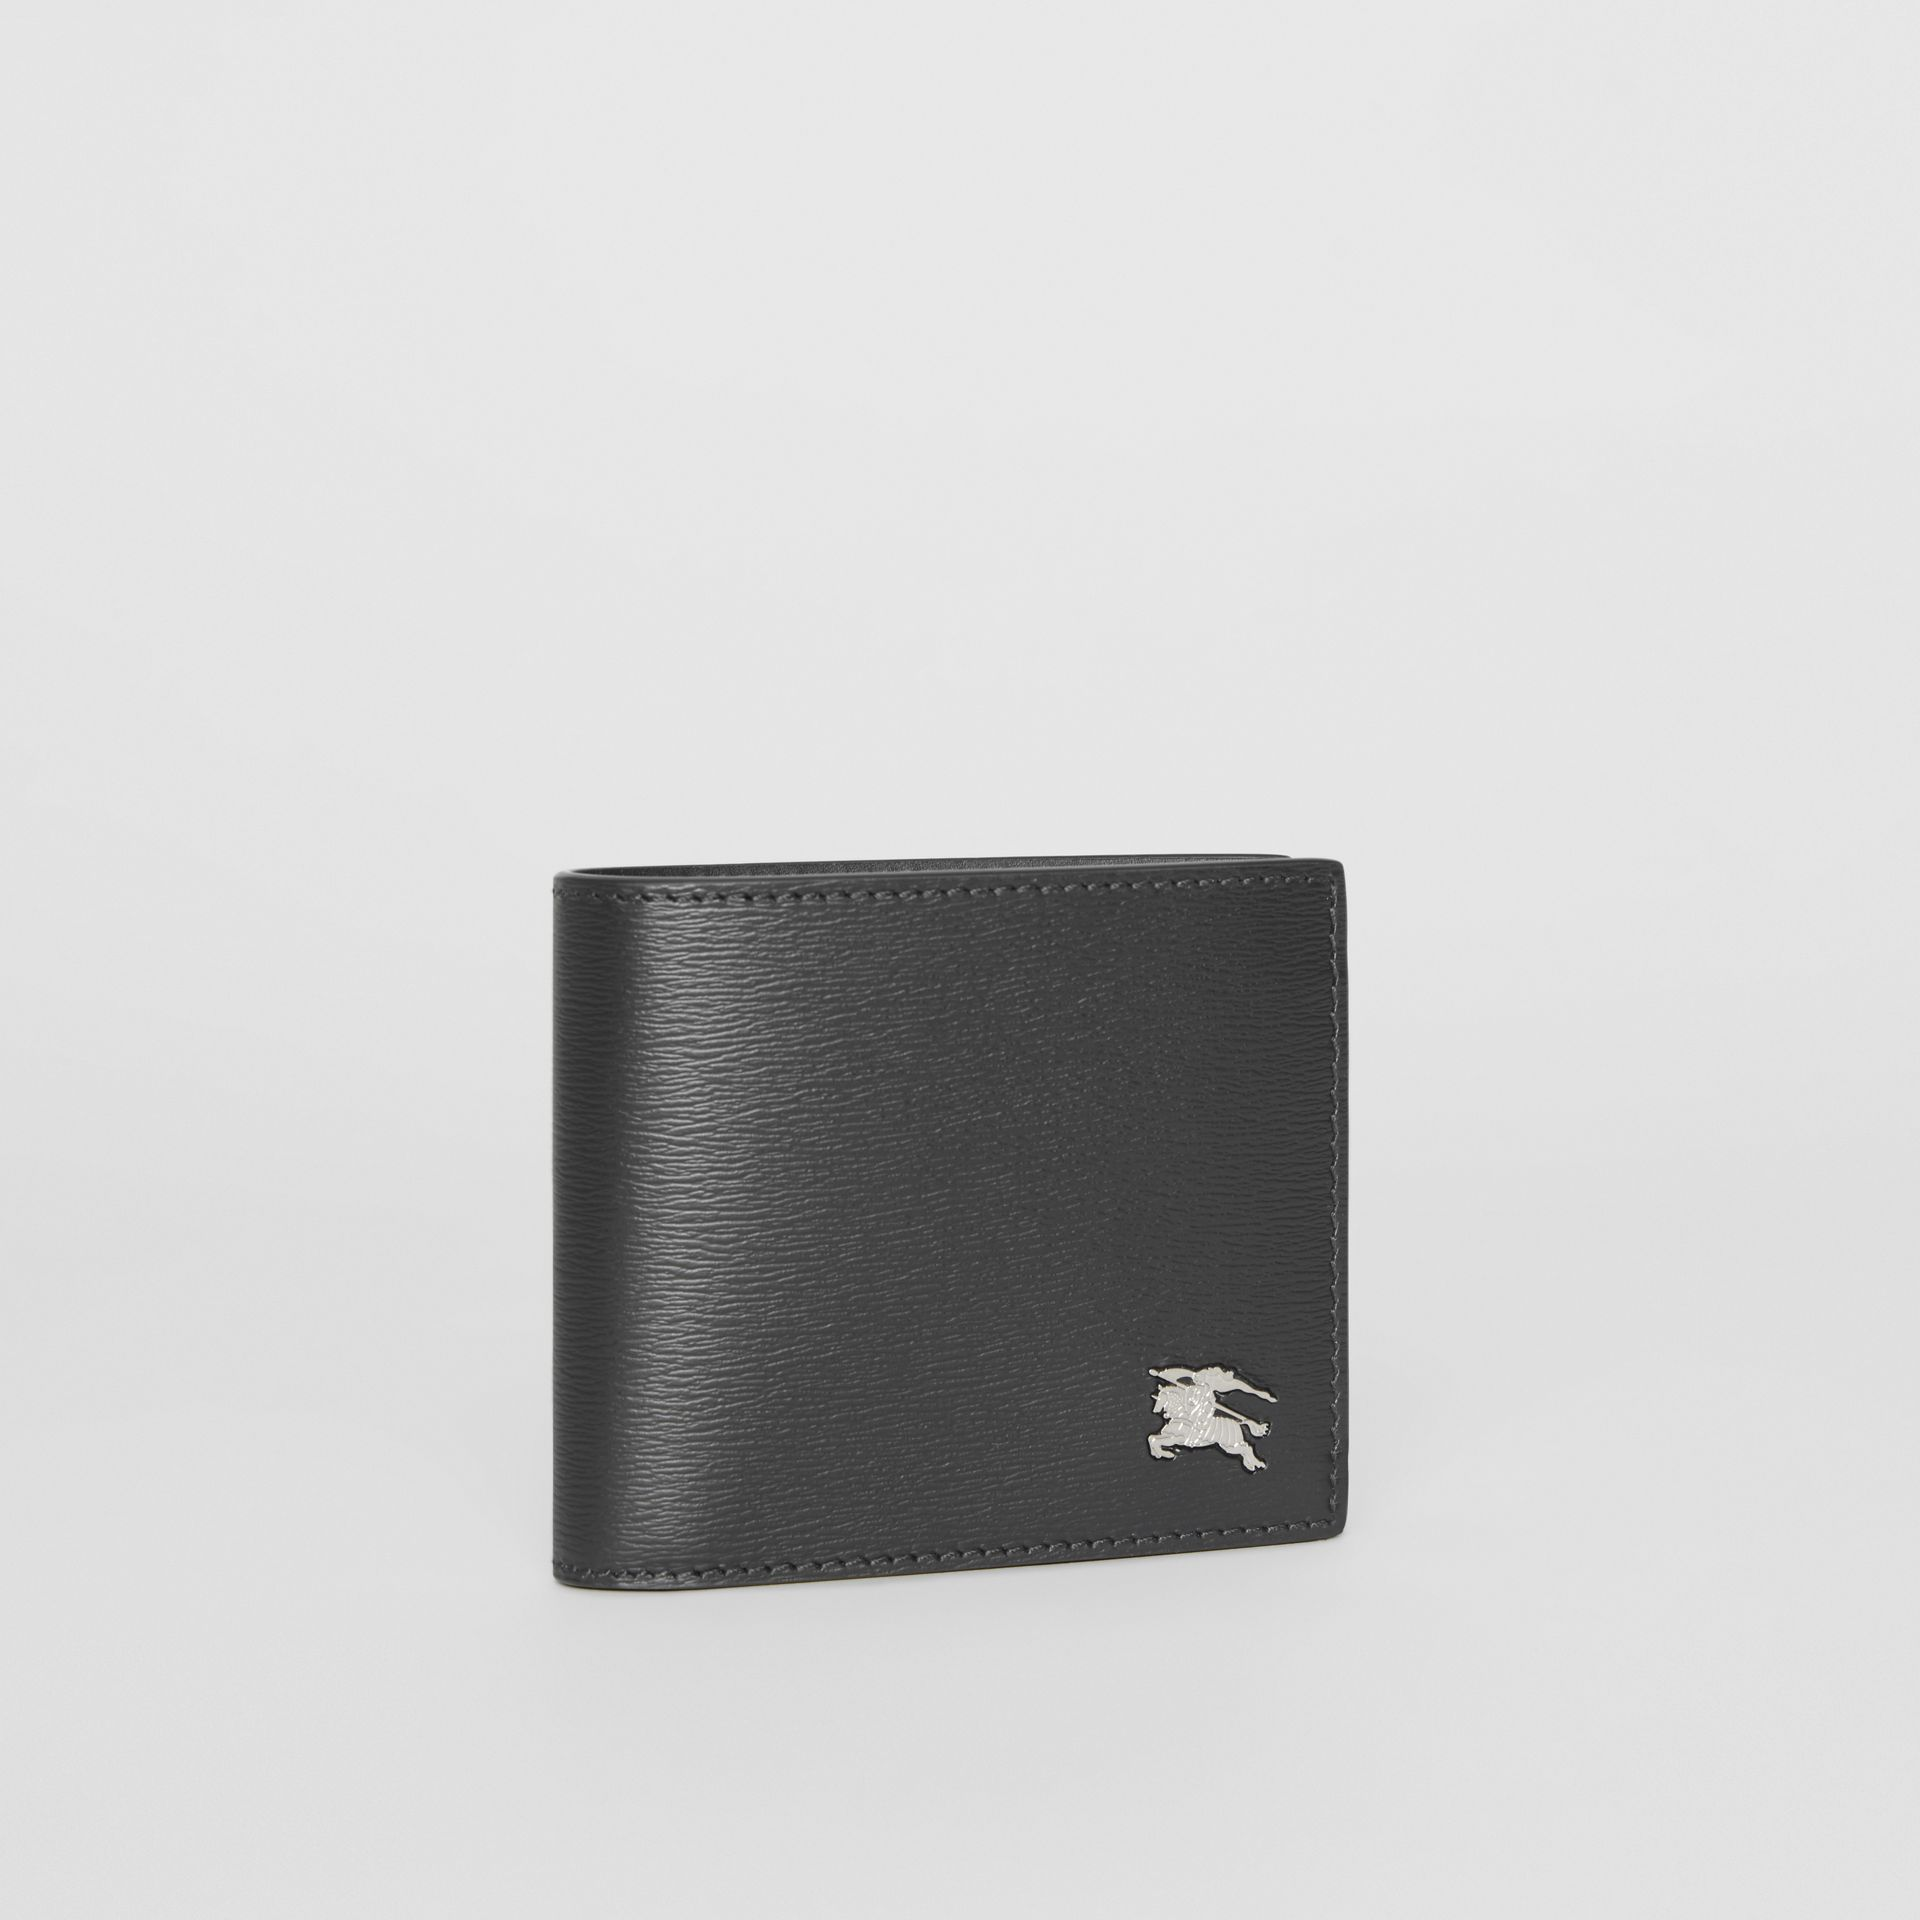 EKD London Leather Bifold Wallet with ID Card Case in Black - Men | Burberry - gallery image 4